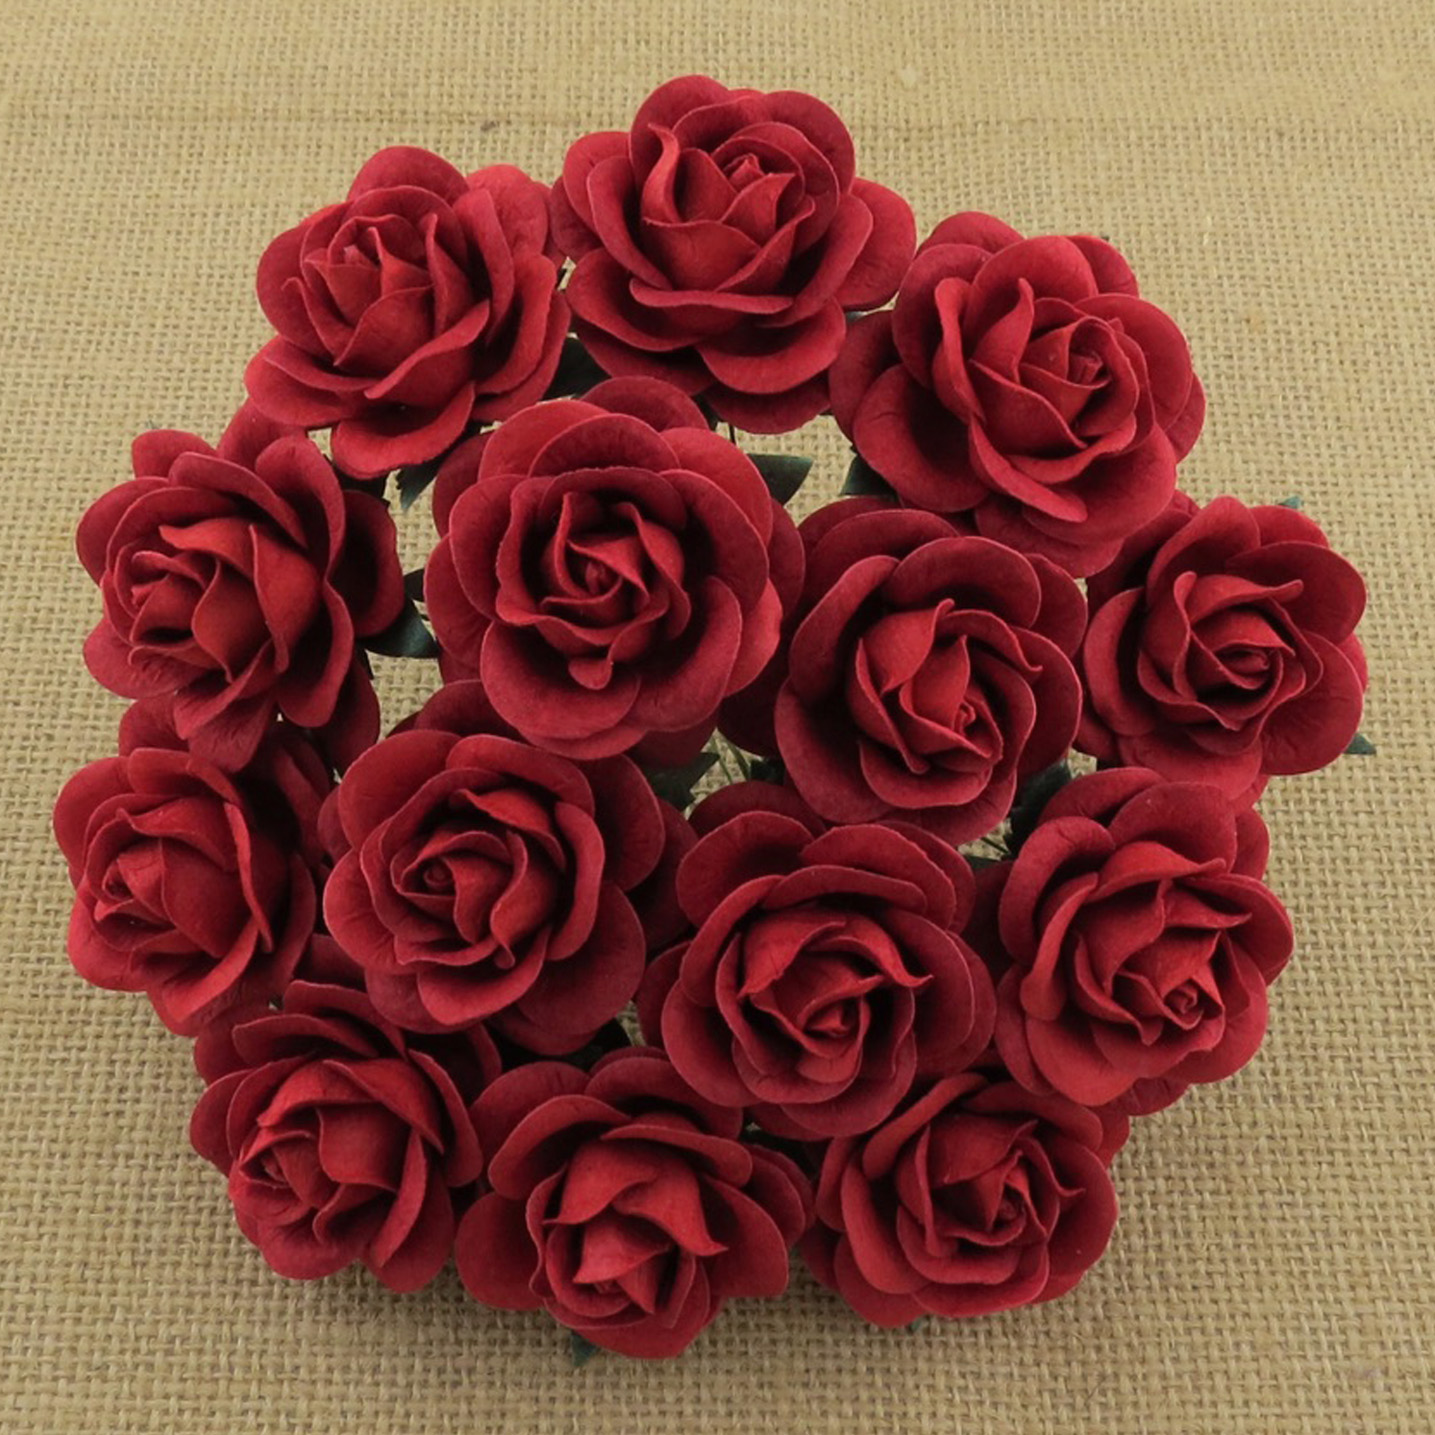 50 RED MULBERRY PAPER TRELLIS ROSES